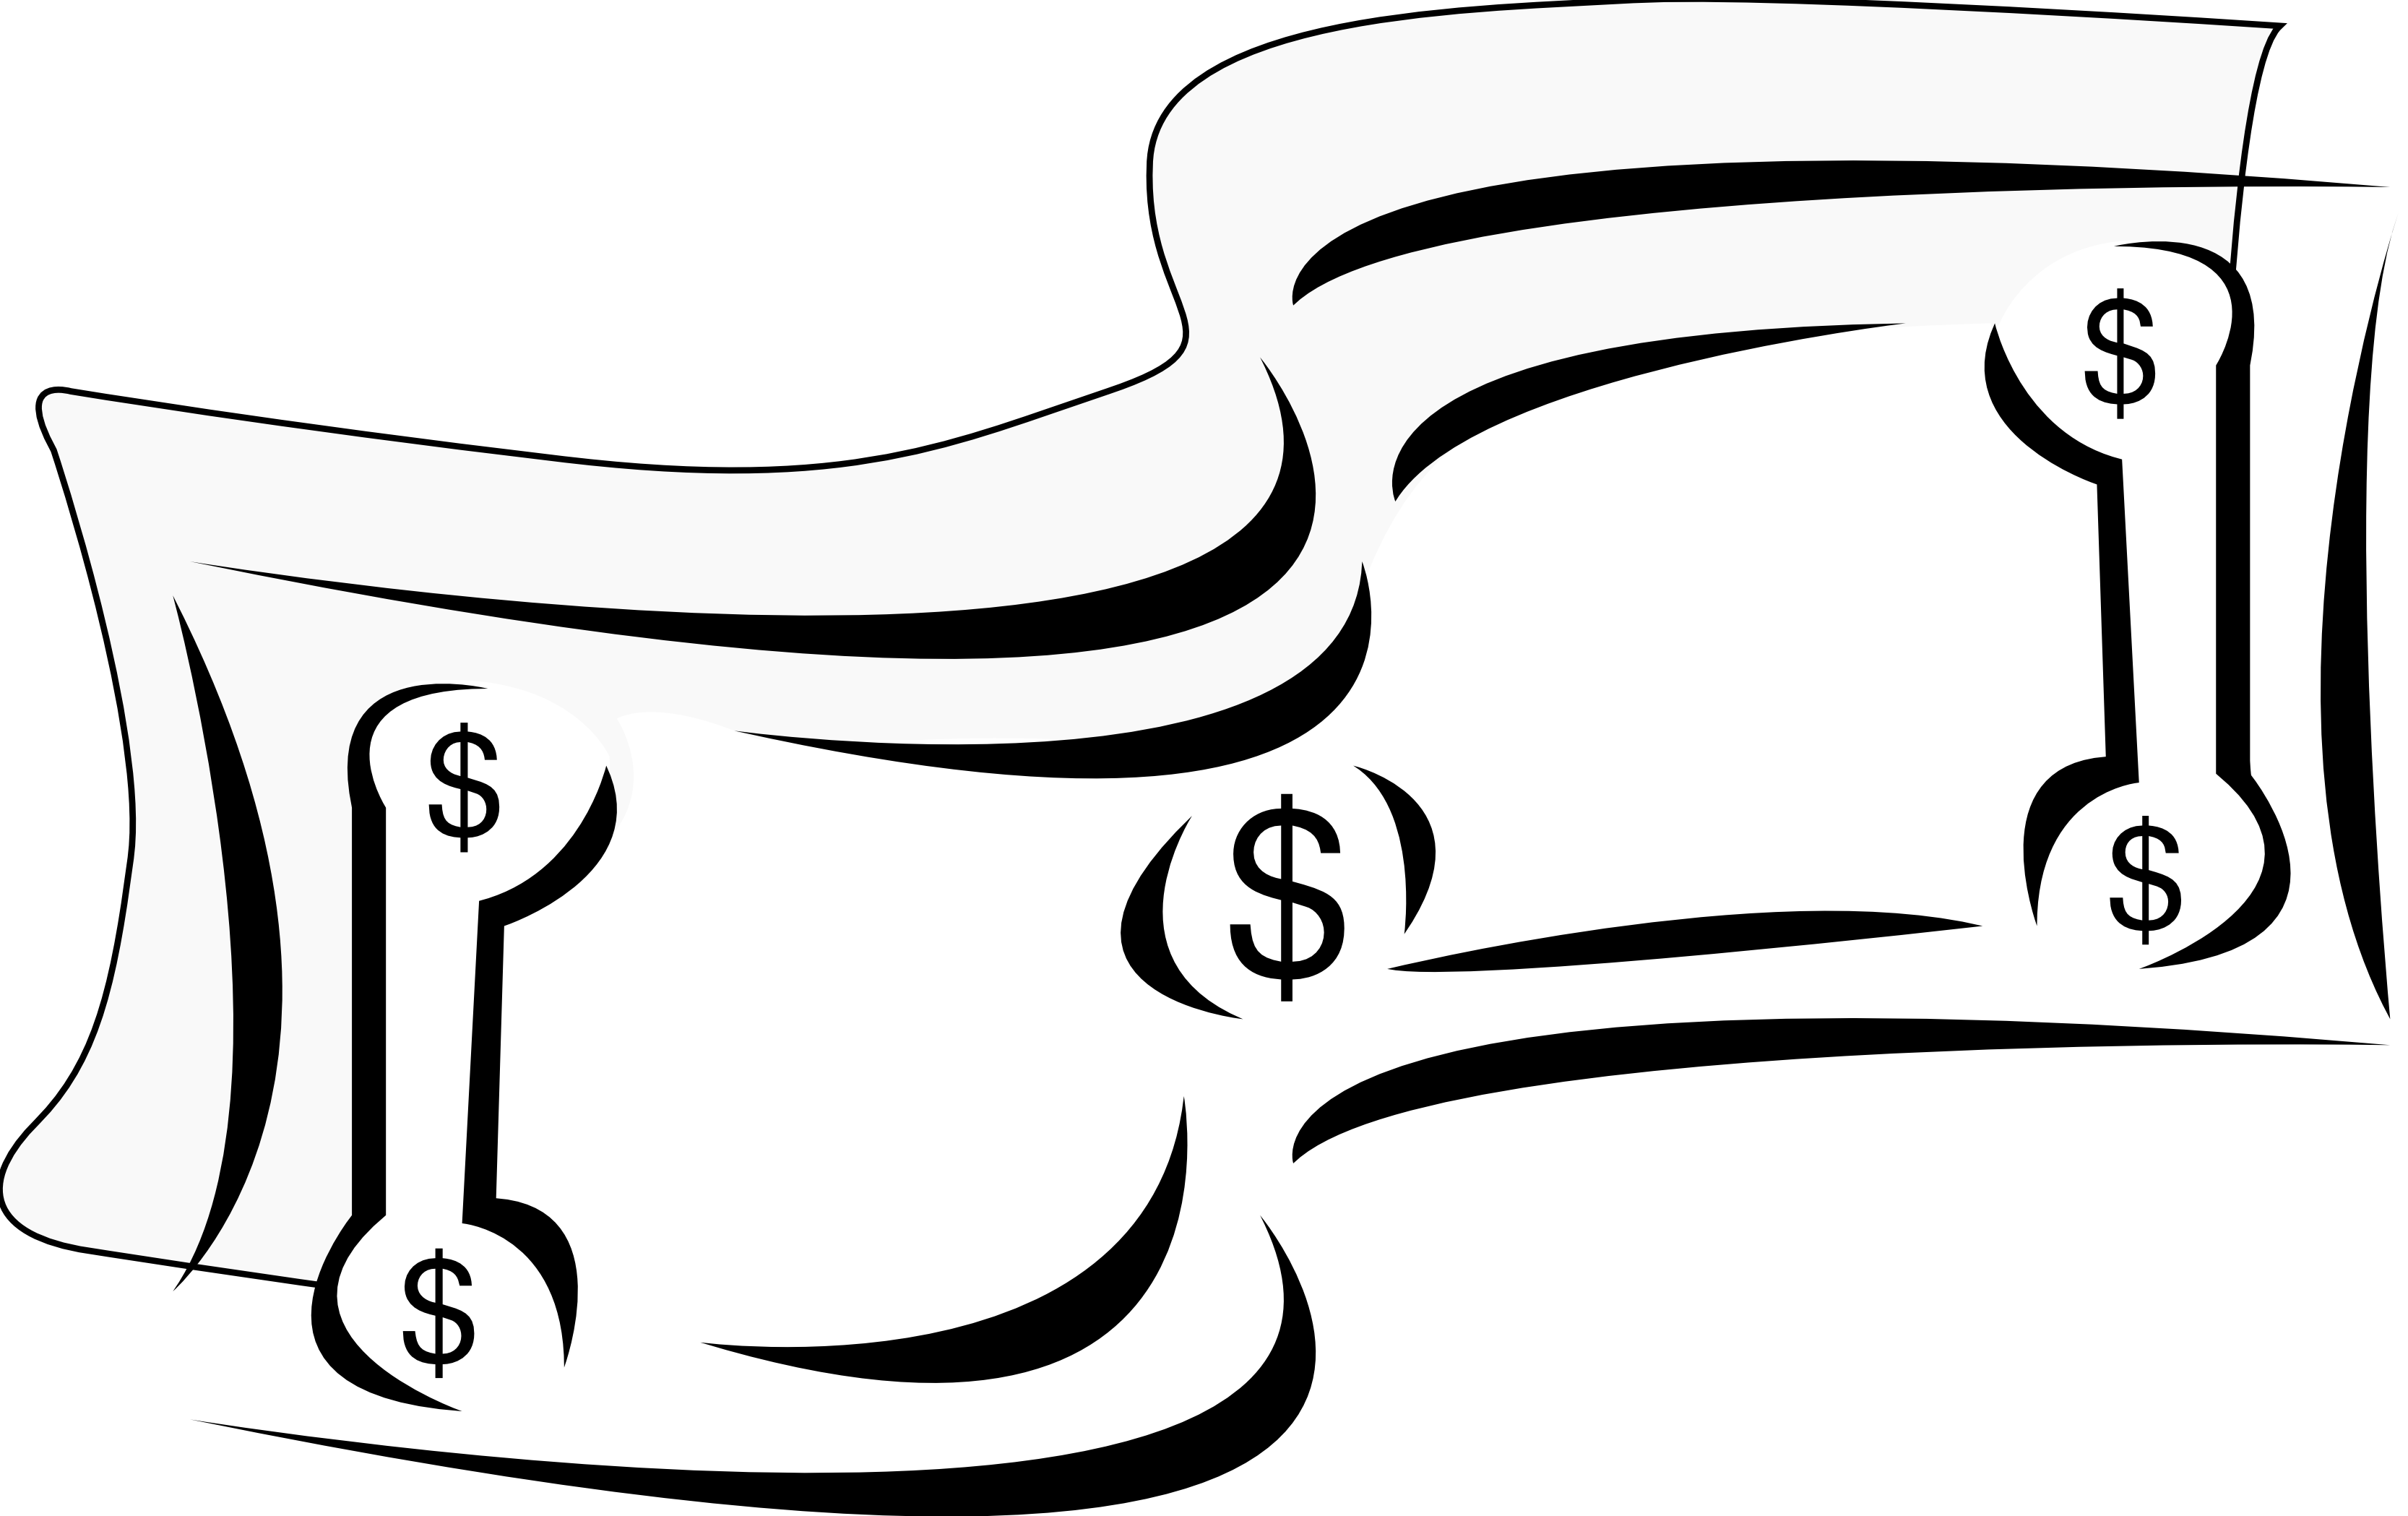 Dollar black and white. Patient clipart icu clipart